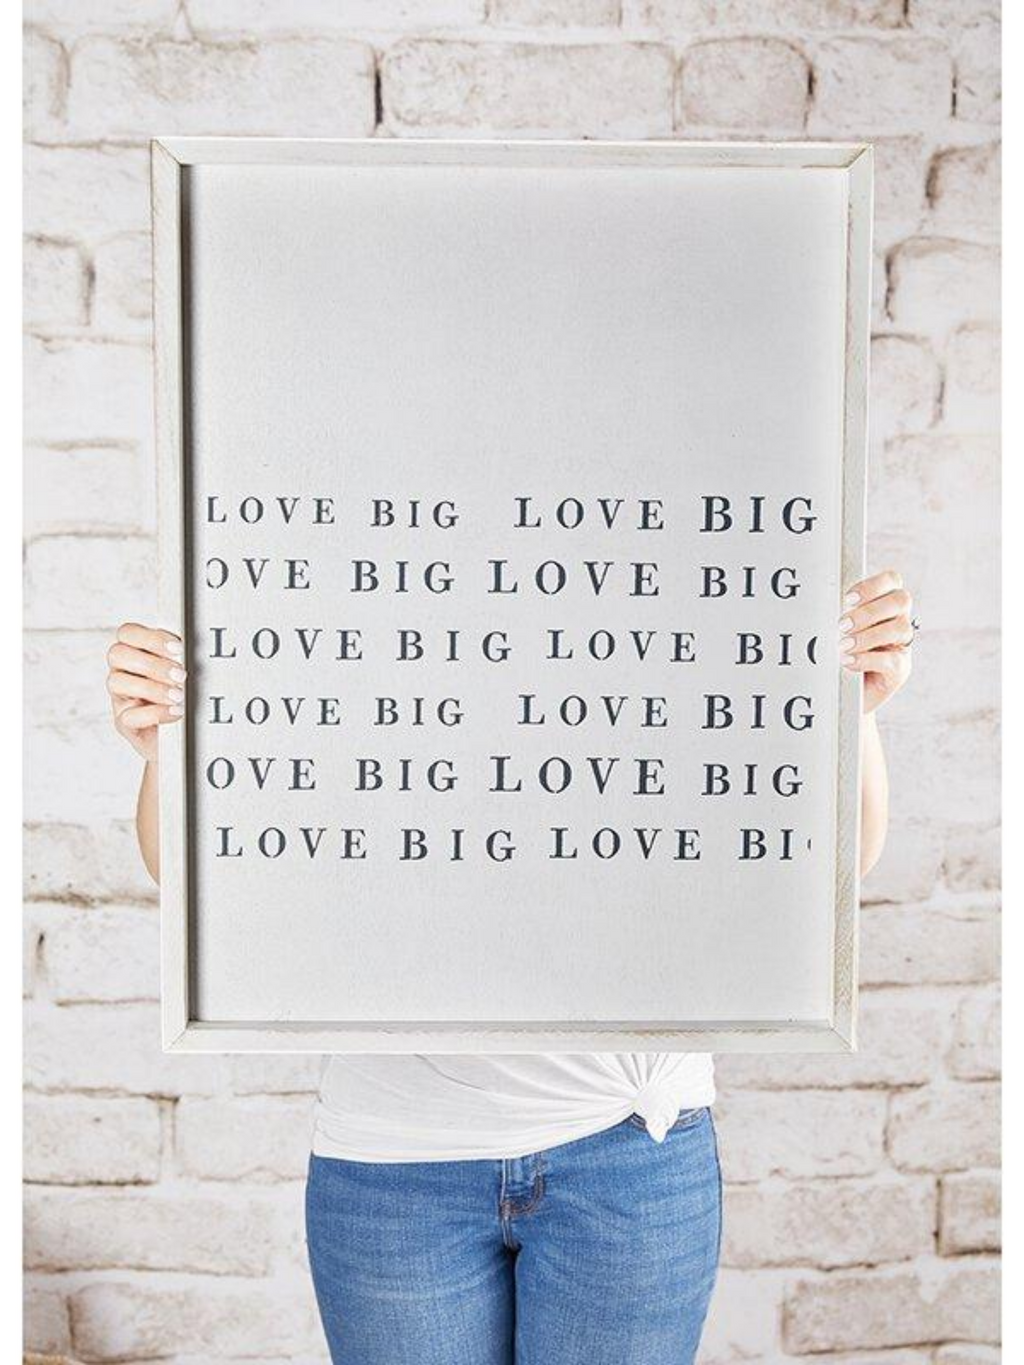 Love Big Frame - 20x26